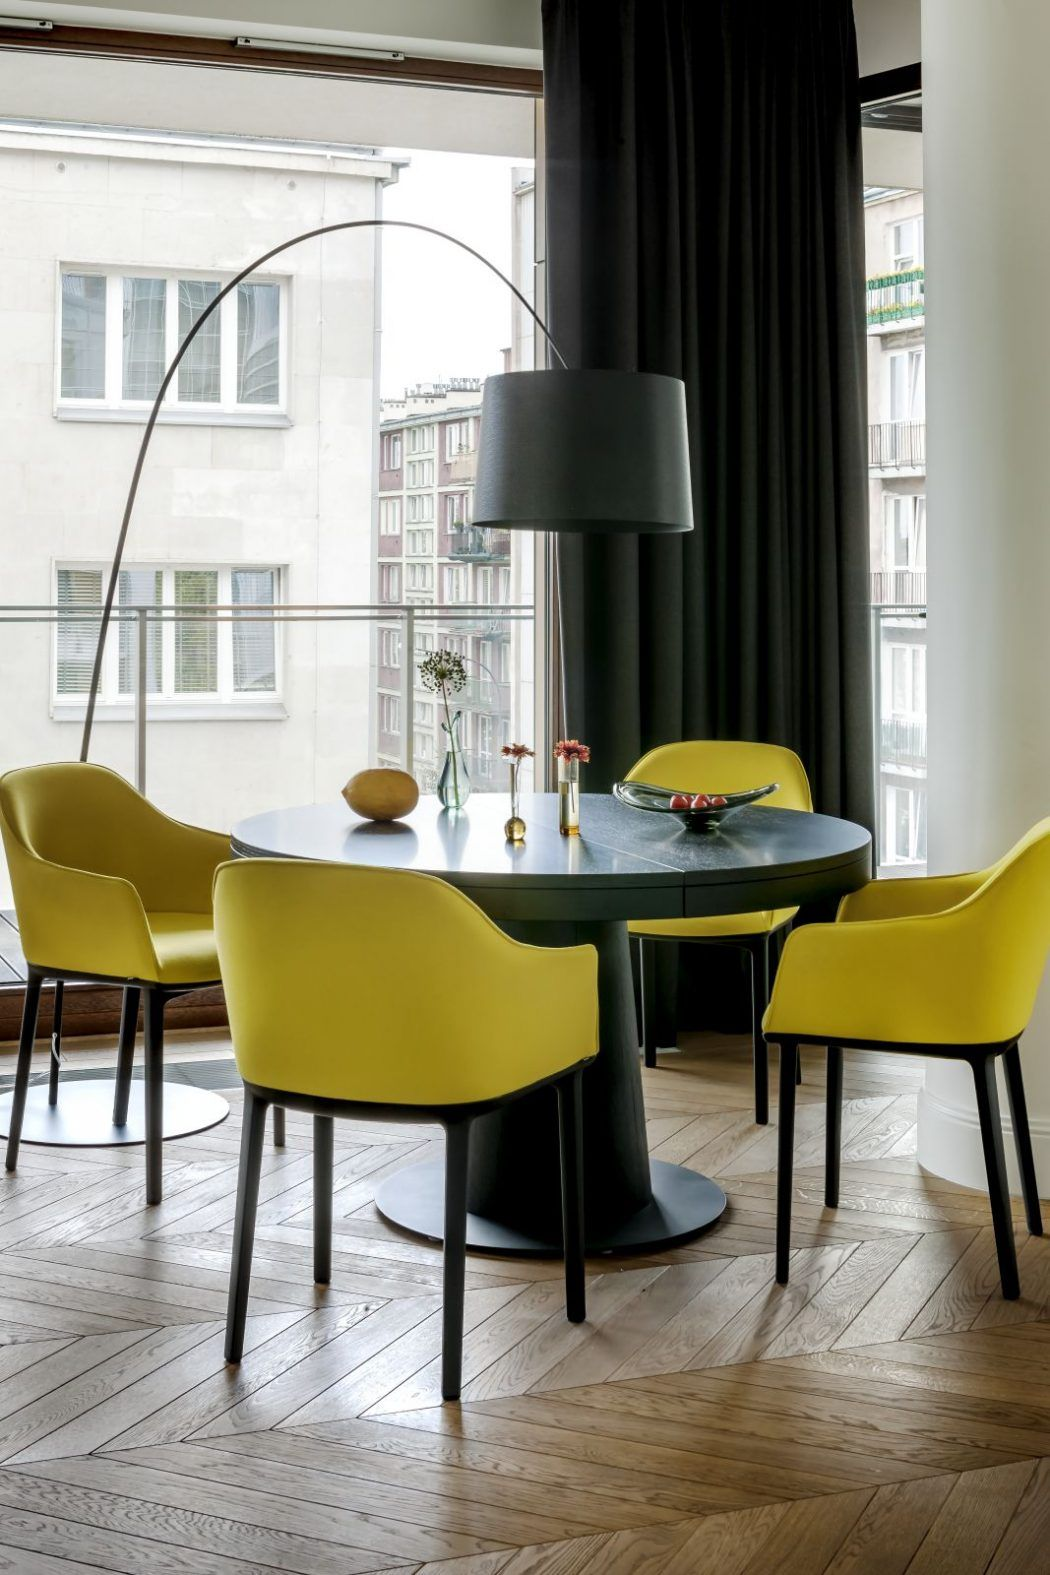 Designed By Anna Koszela This Elegant Contemporary Apartment Is Located In Warsaw Poland Dining Floor Lamp Floor Lamps Living Room Floor Lamp Design #tall #floor #lamps #for #living #room